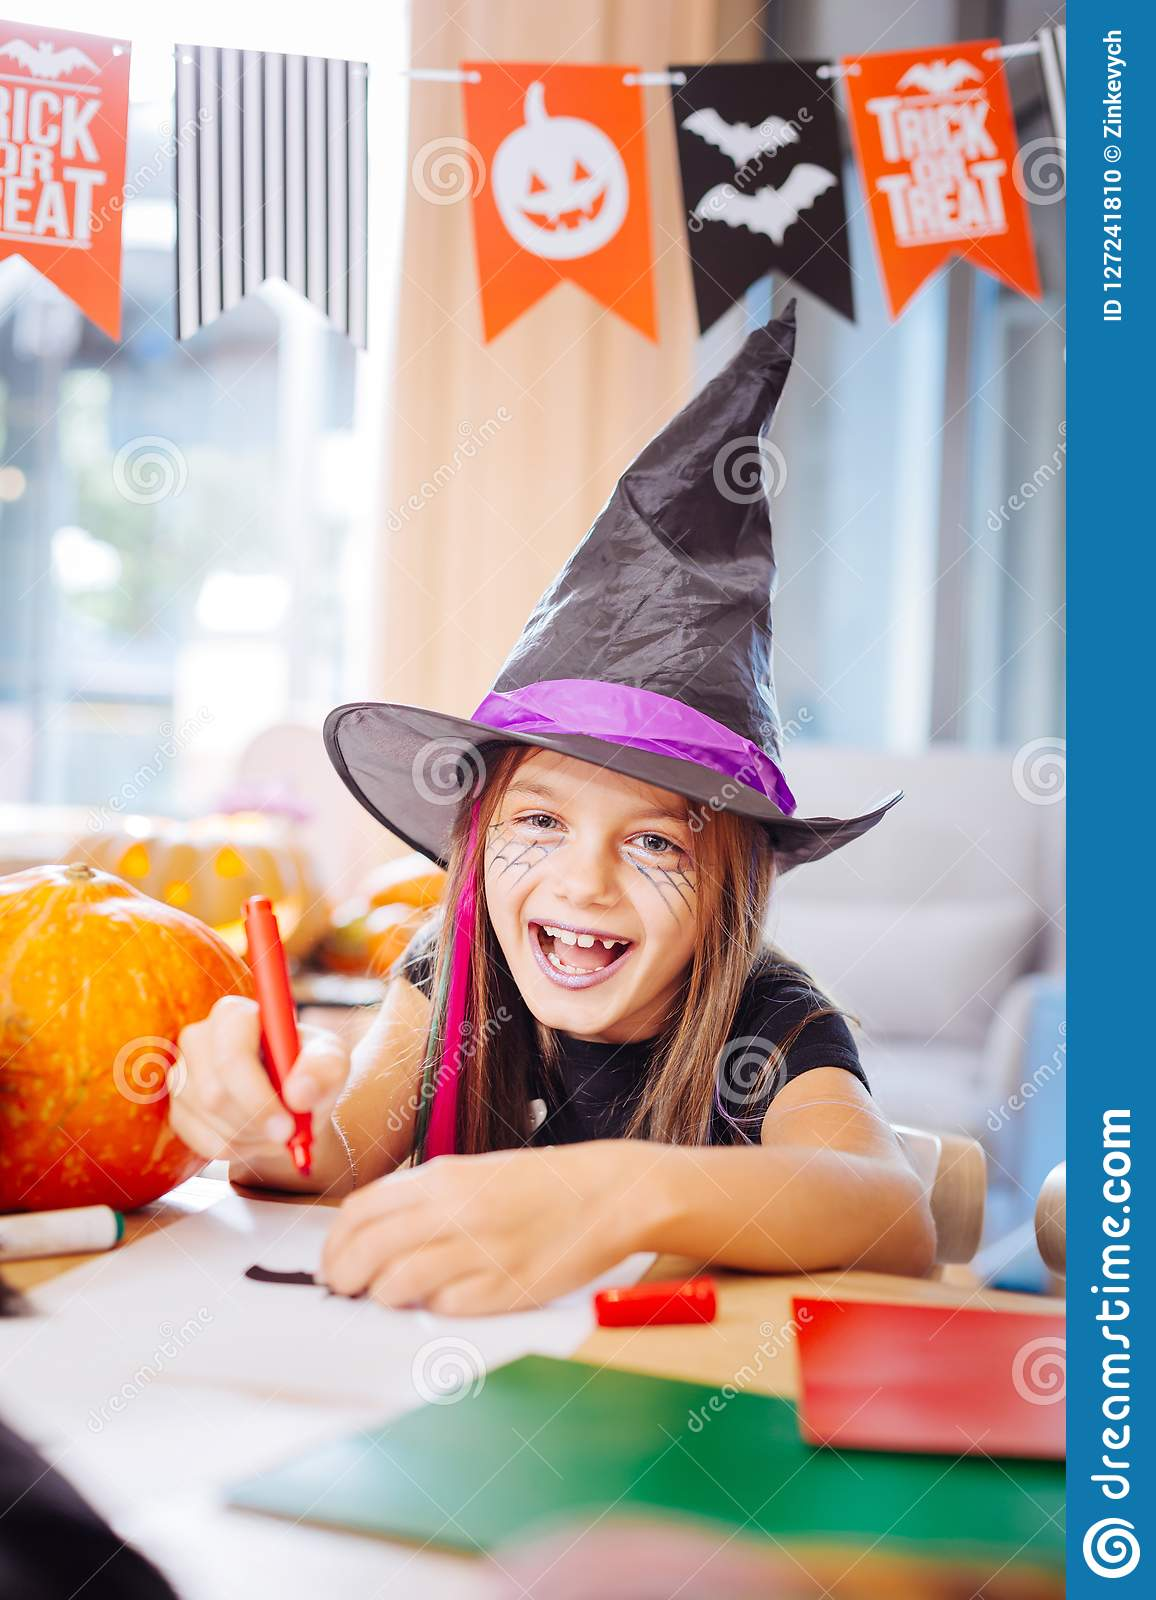 Girl wearing wizard Halloween costume laughing while drawing scary pictures